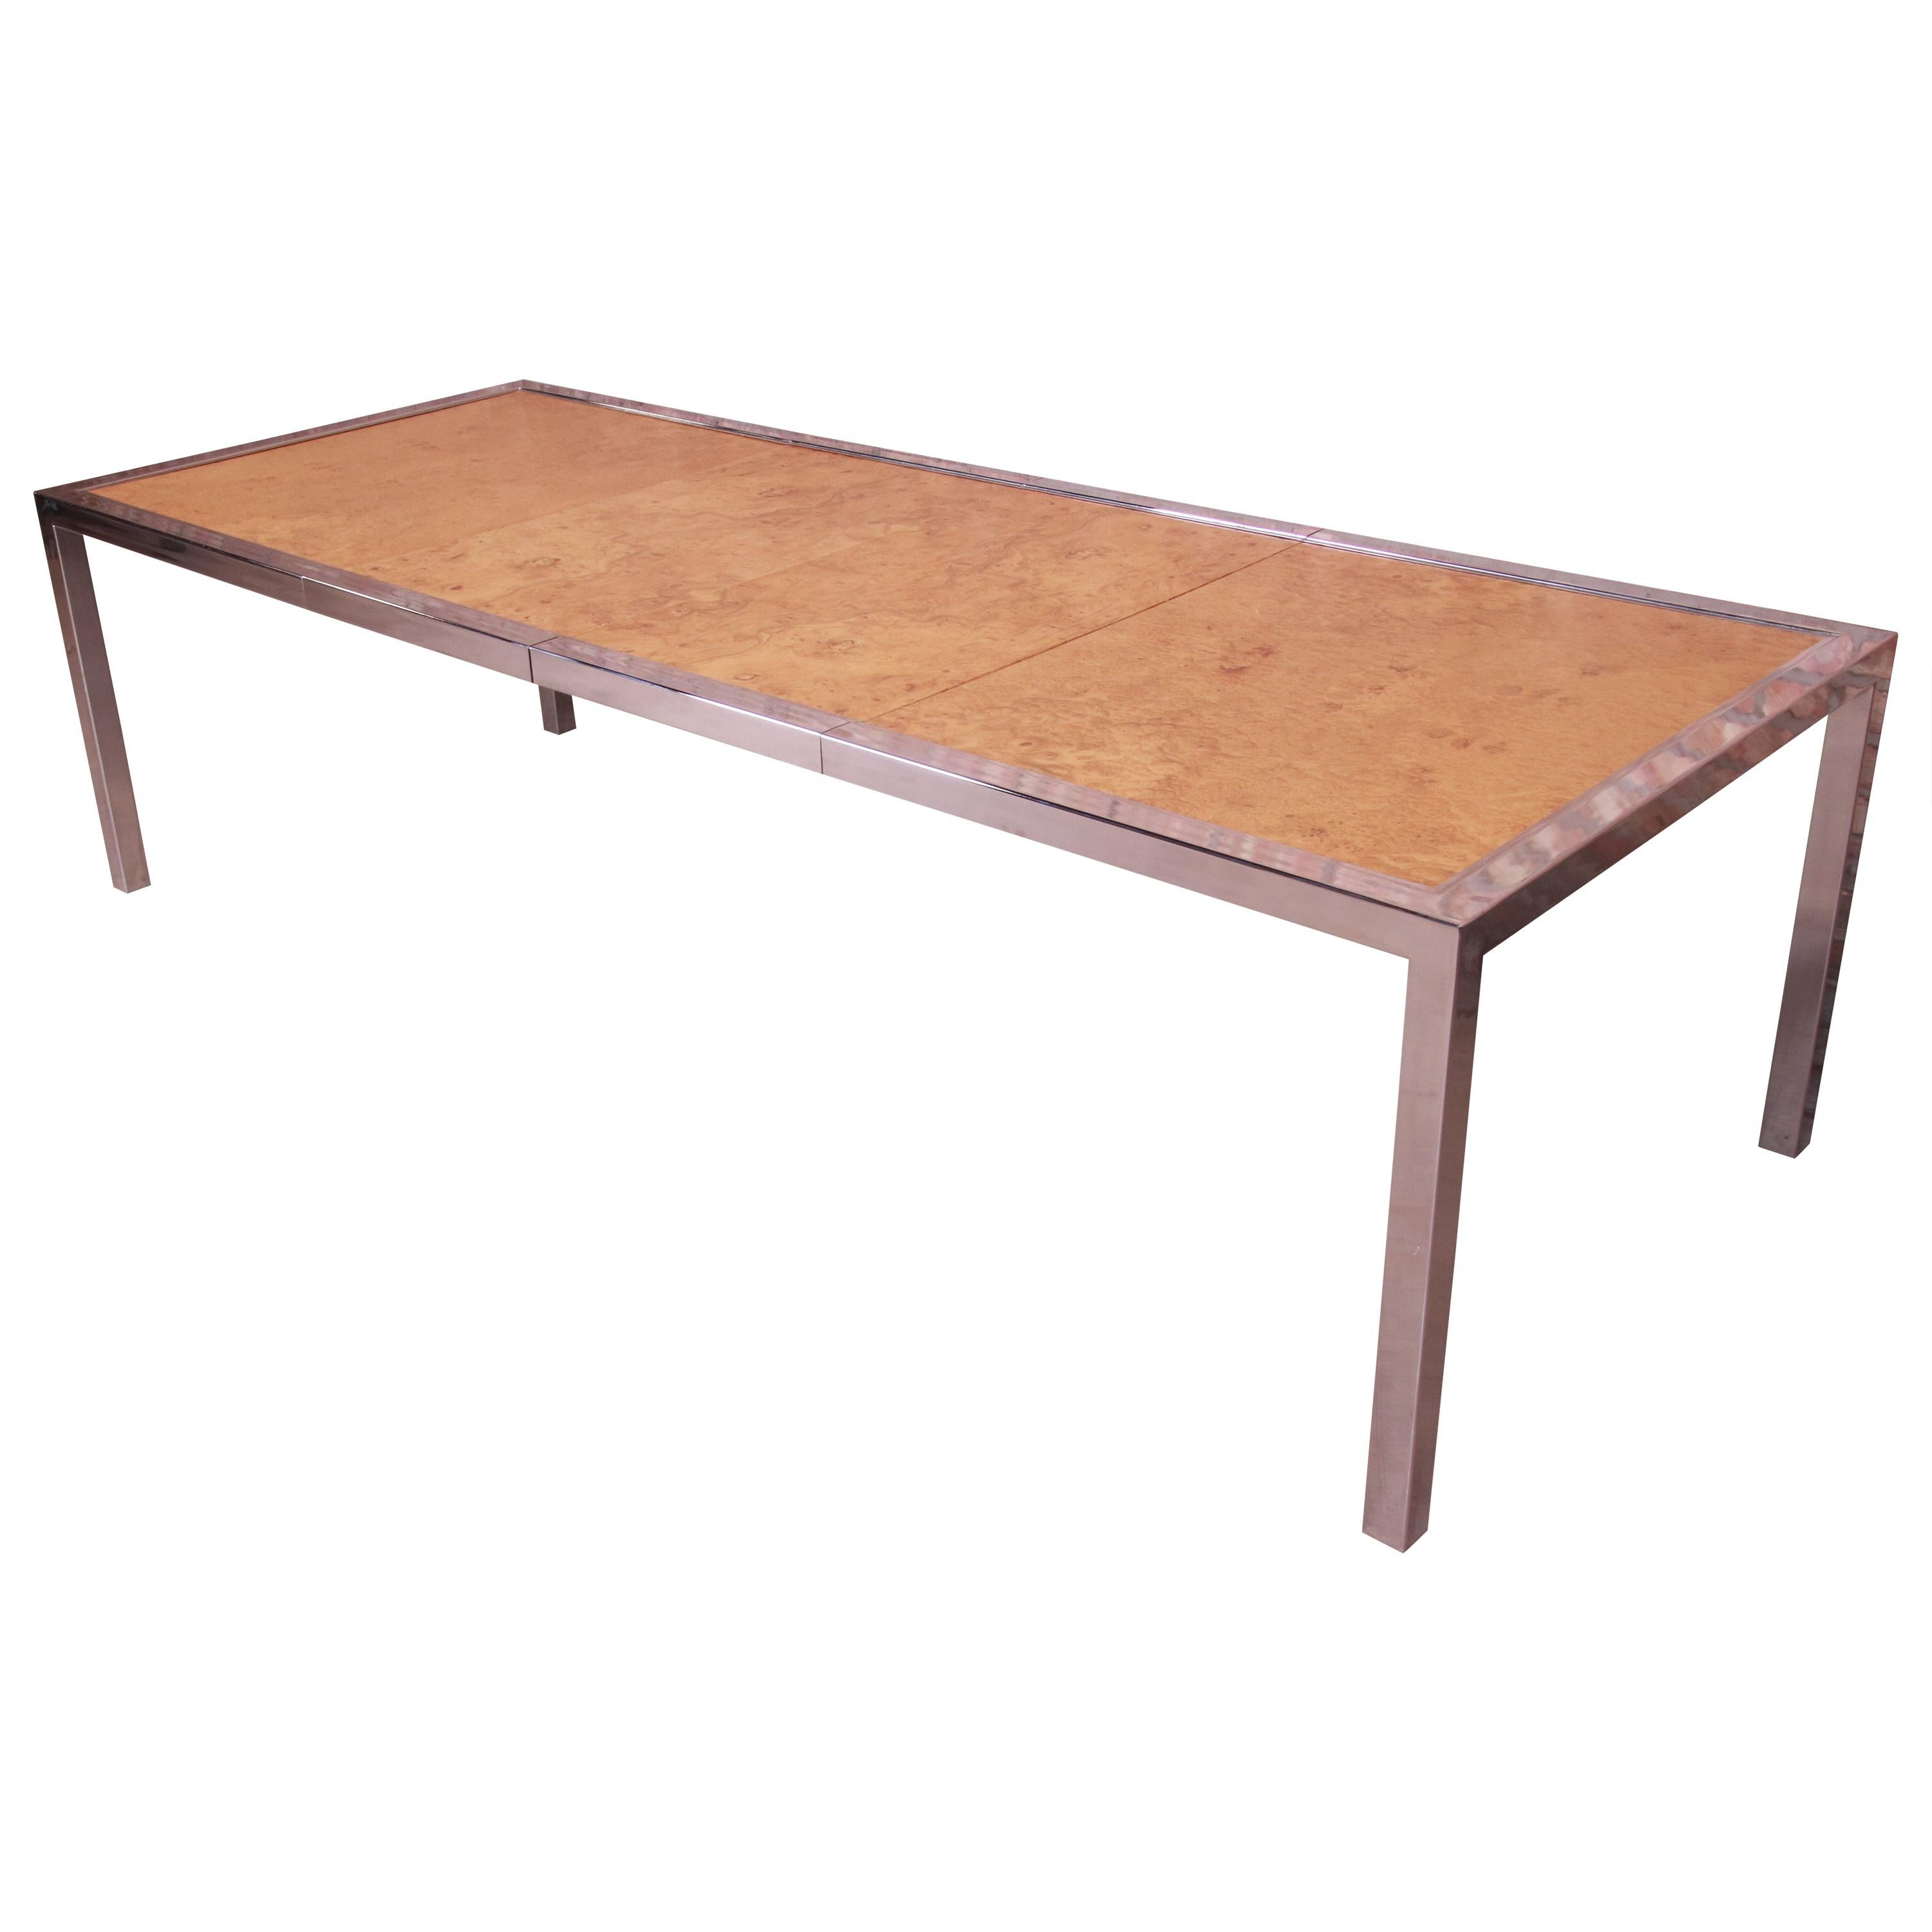 Leon Rosen for Pace Collection Burl Wood and Chrome Dining Table, Refinished